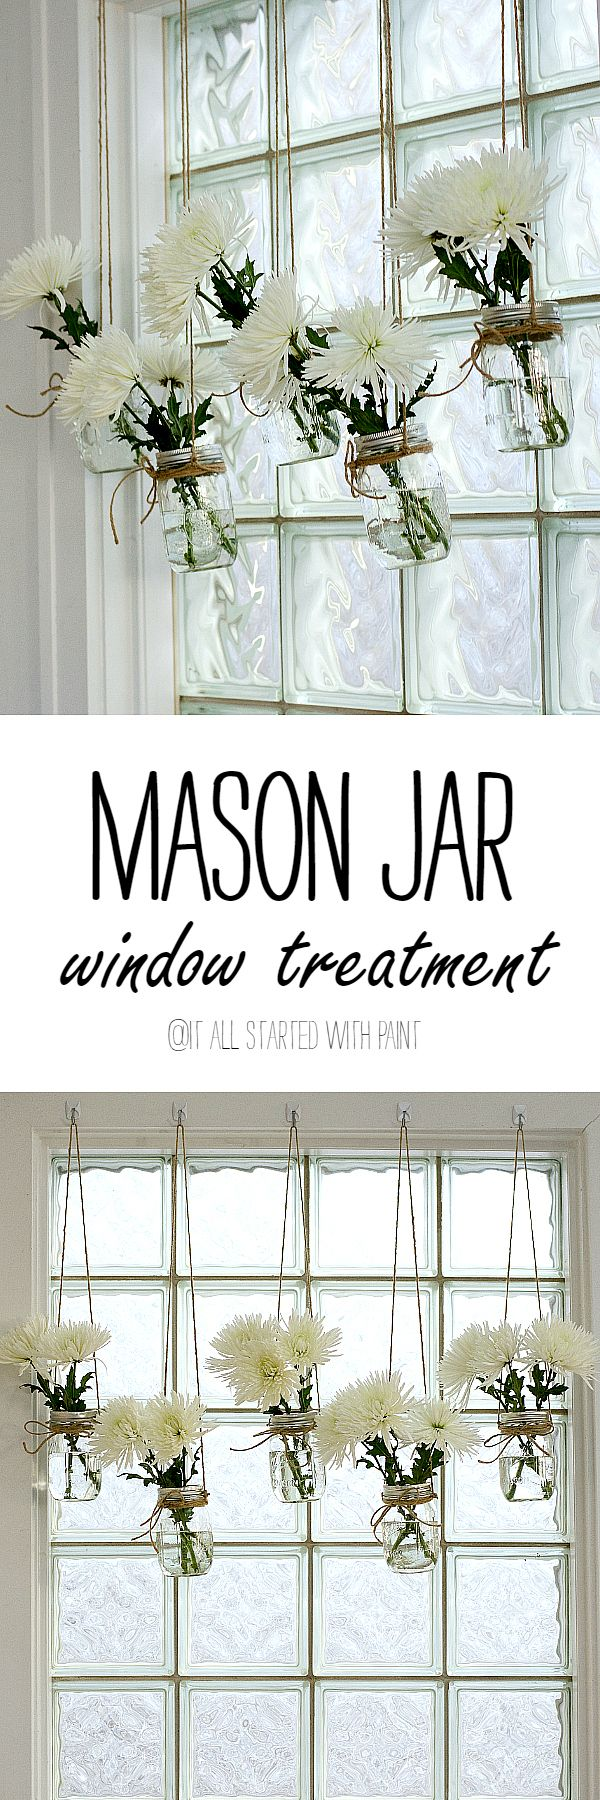 Mason Jar Vases - Mason Jar Window Treatment Home & Kitchen - Kitchen & Dining - kitchen decor - http://amzn.to/2leulul